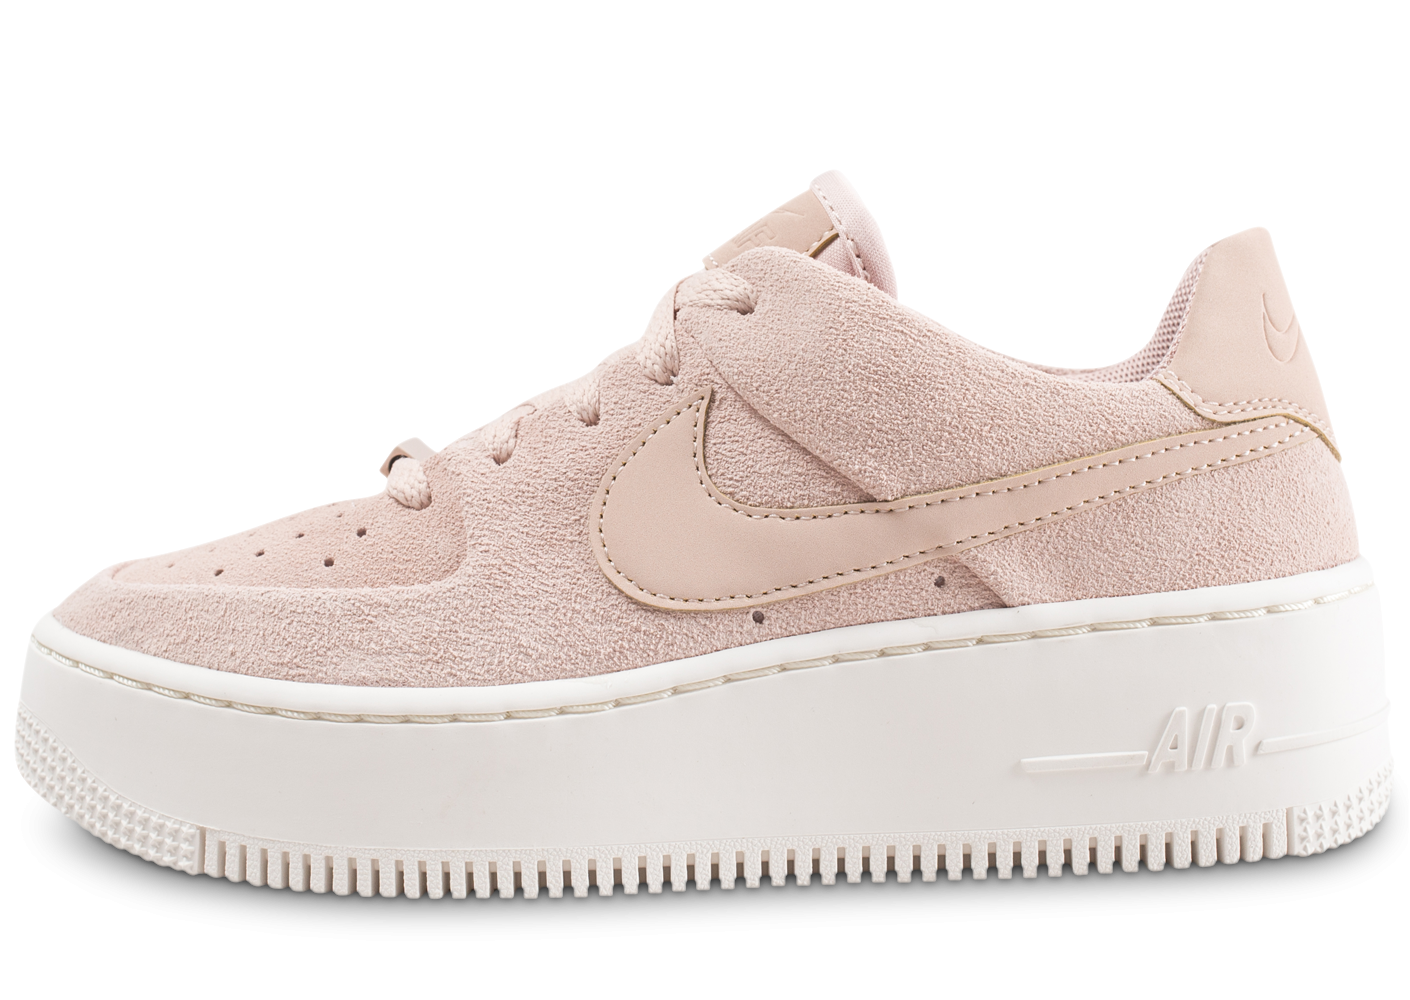 promo code 81220 6a252 Nike Air Force 1 Sage Low rose - Chaussures Baskets femme - Chausport